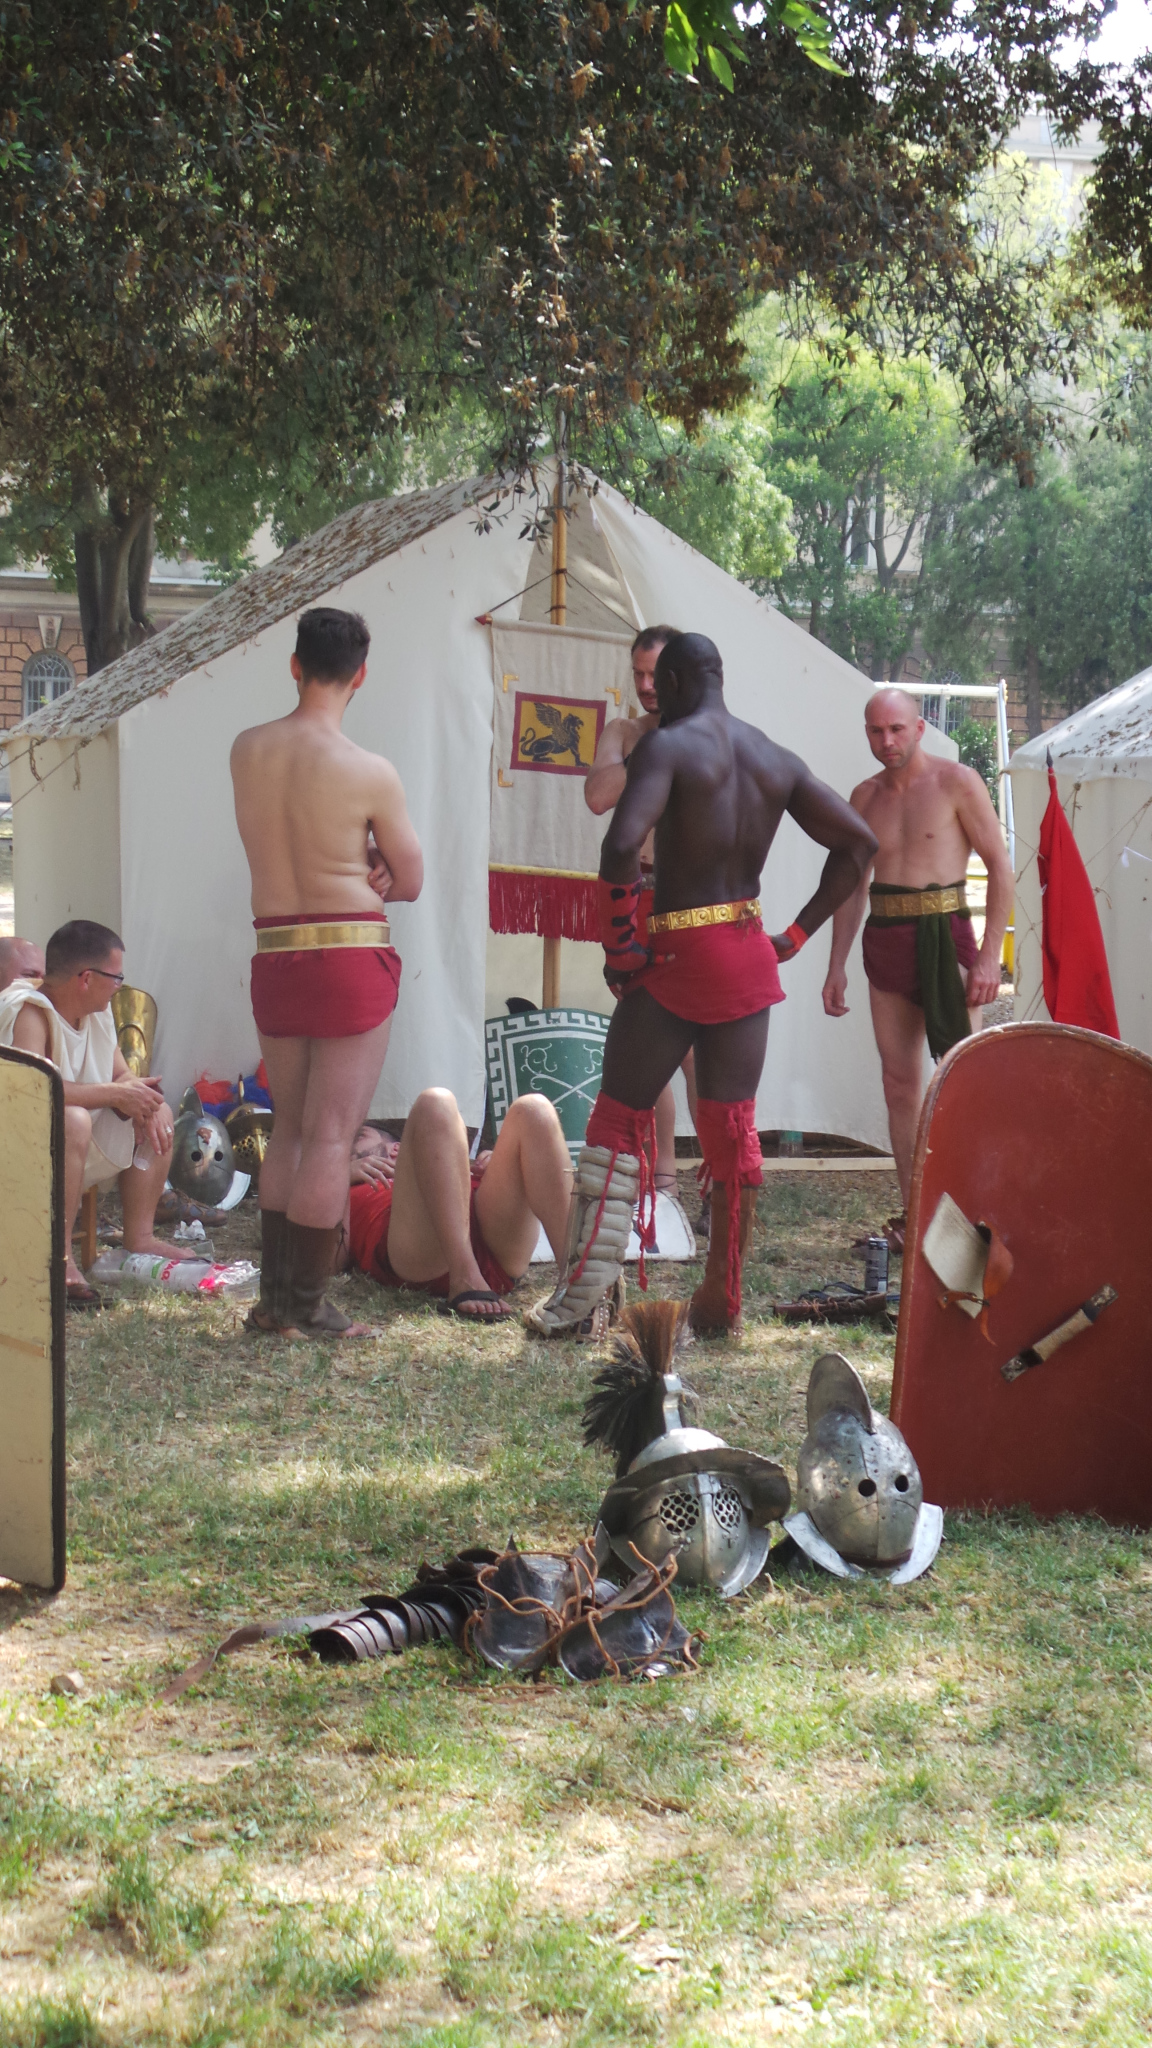 Gladiators at Festival of Antiquity, Pula, Croatia